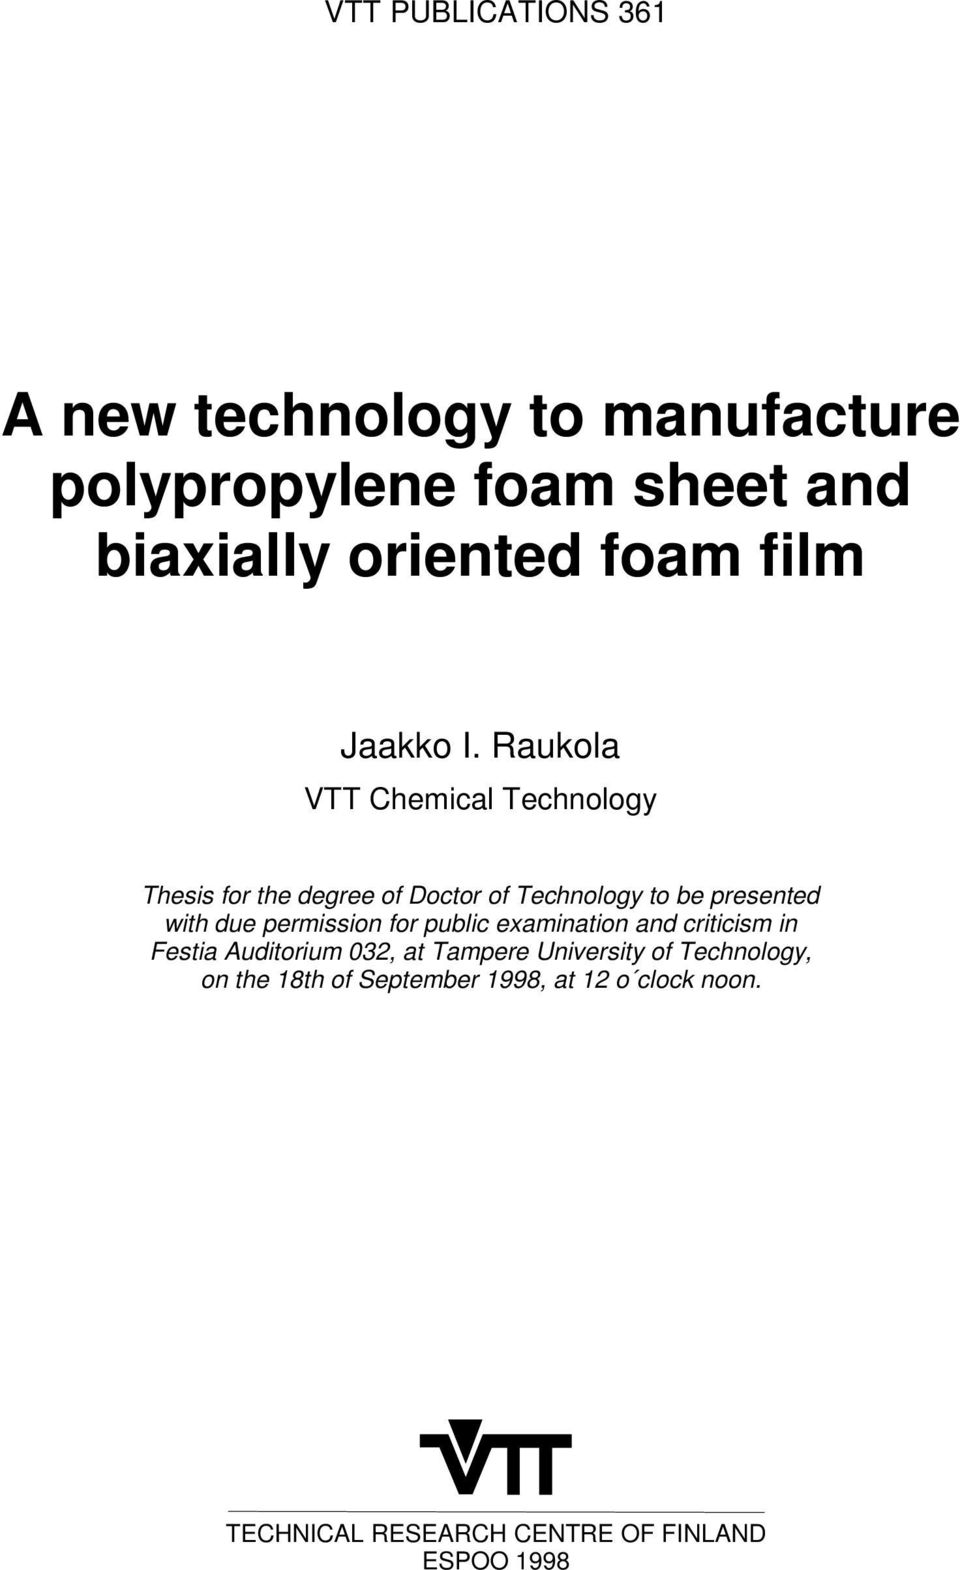 A new technology to manufacture polypropylene foam sheet and